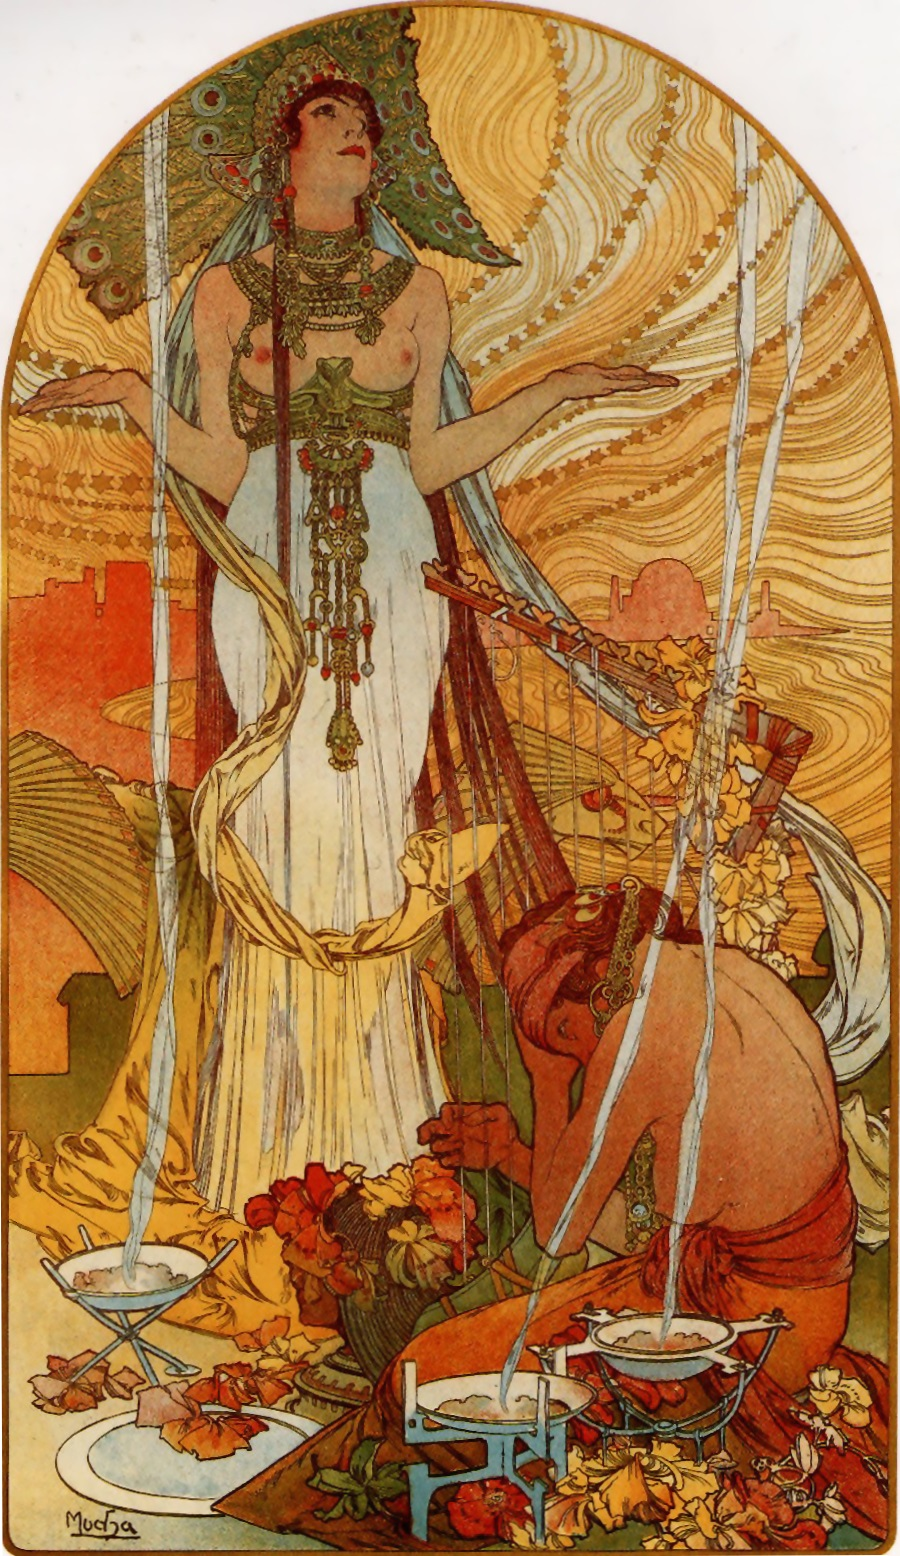 https://i1.wp.com/upload.wikimedia.org/wikipedia/commons/4/46/Alfons_Mucha_-_1896_-_Salammb%C3%B4.jpg